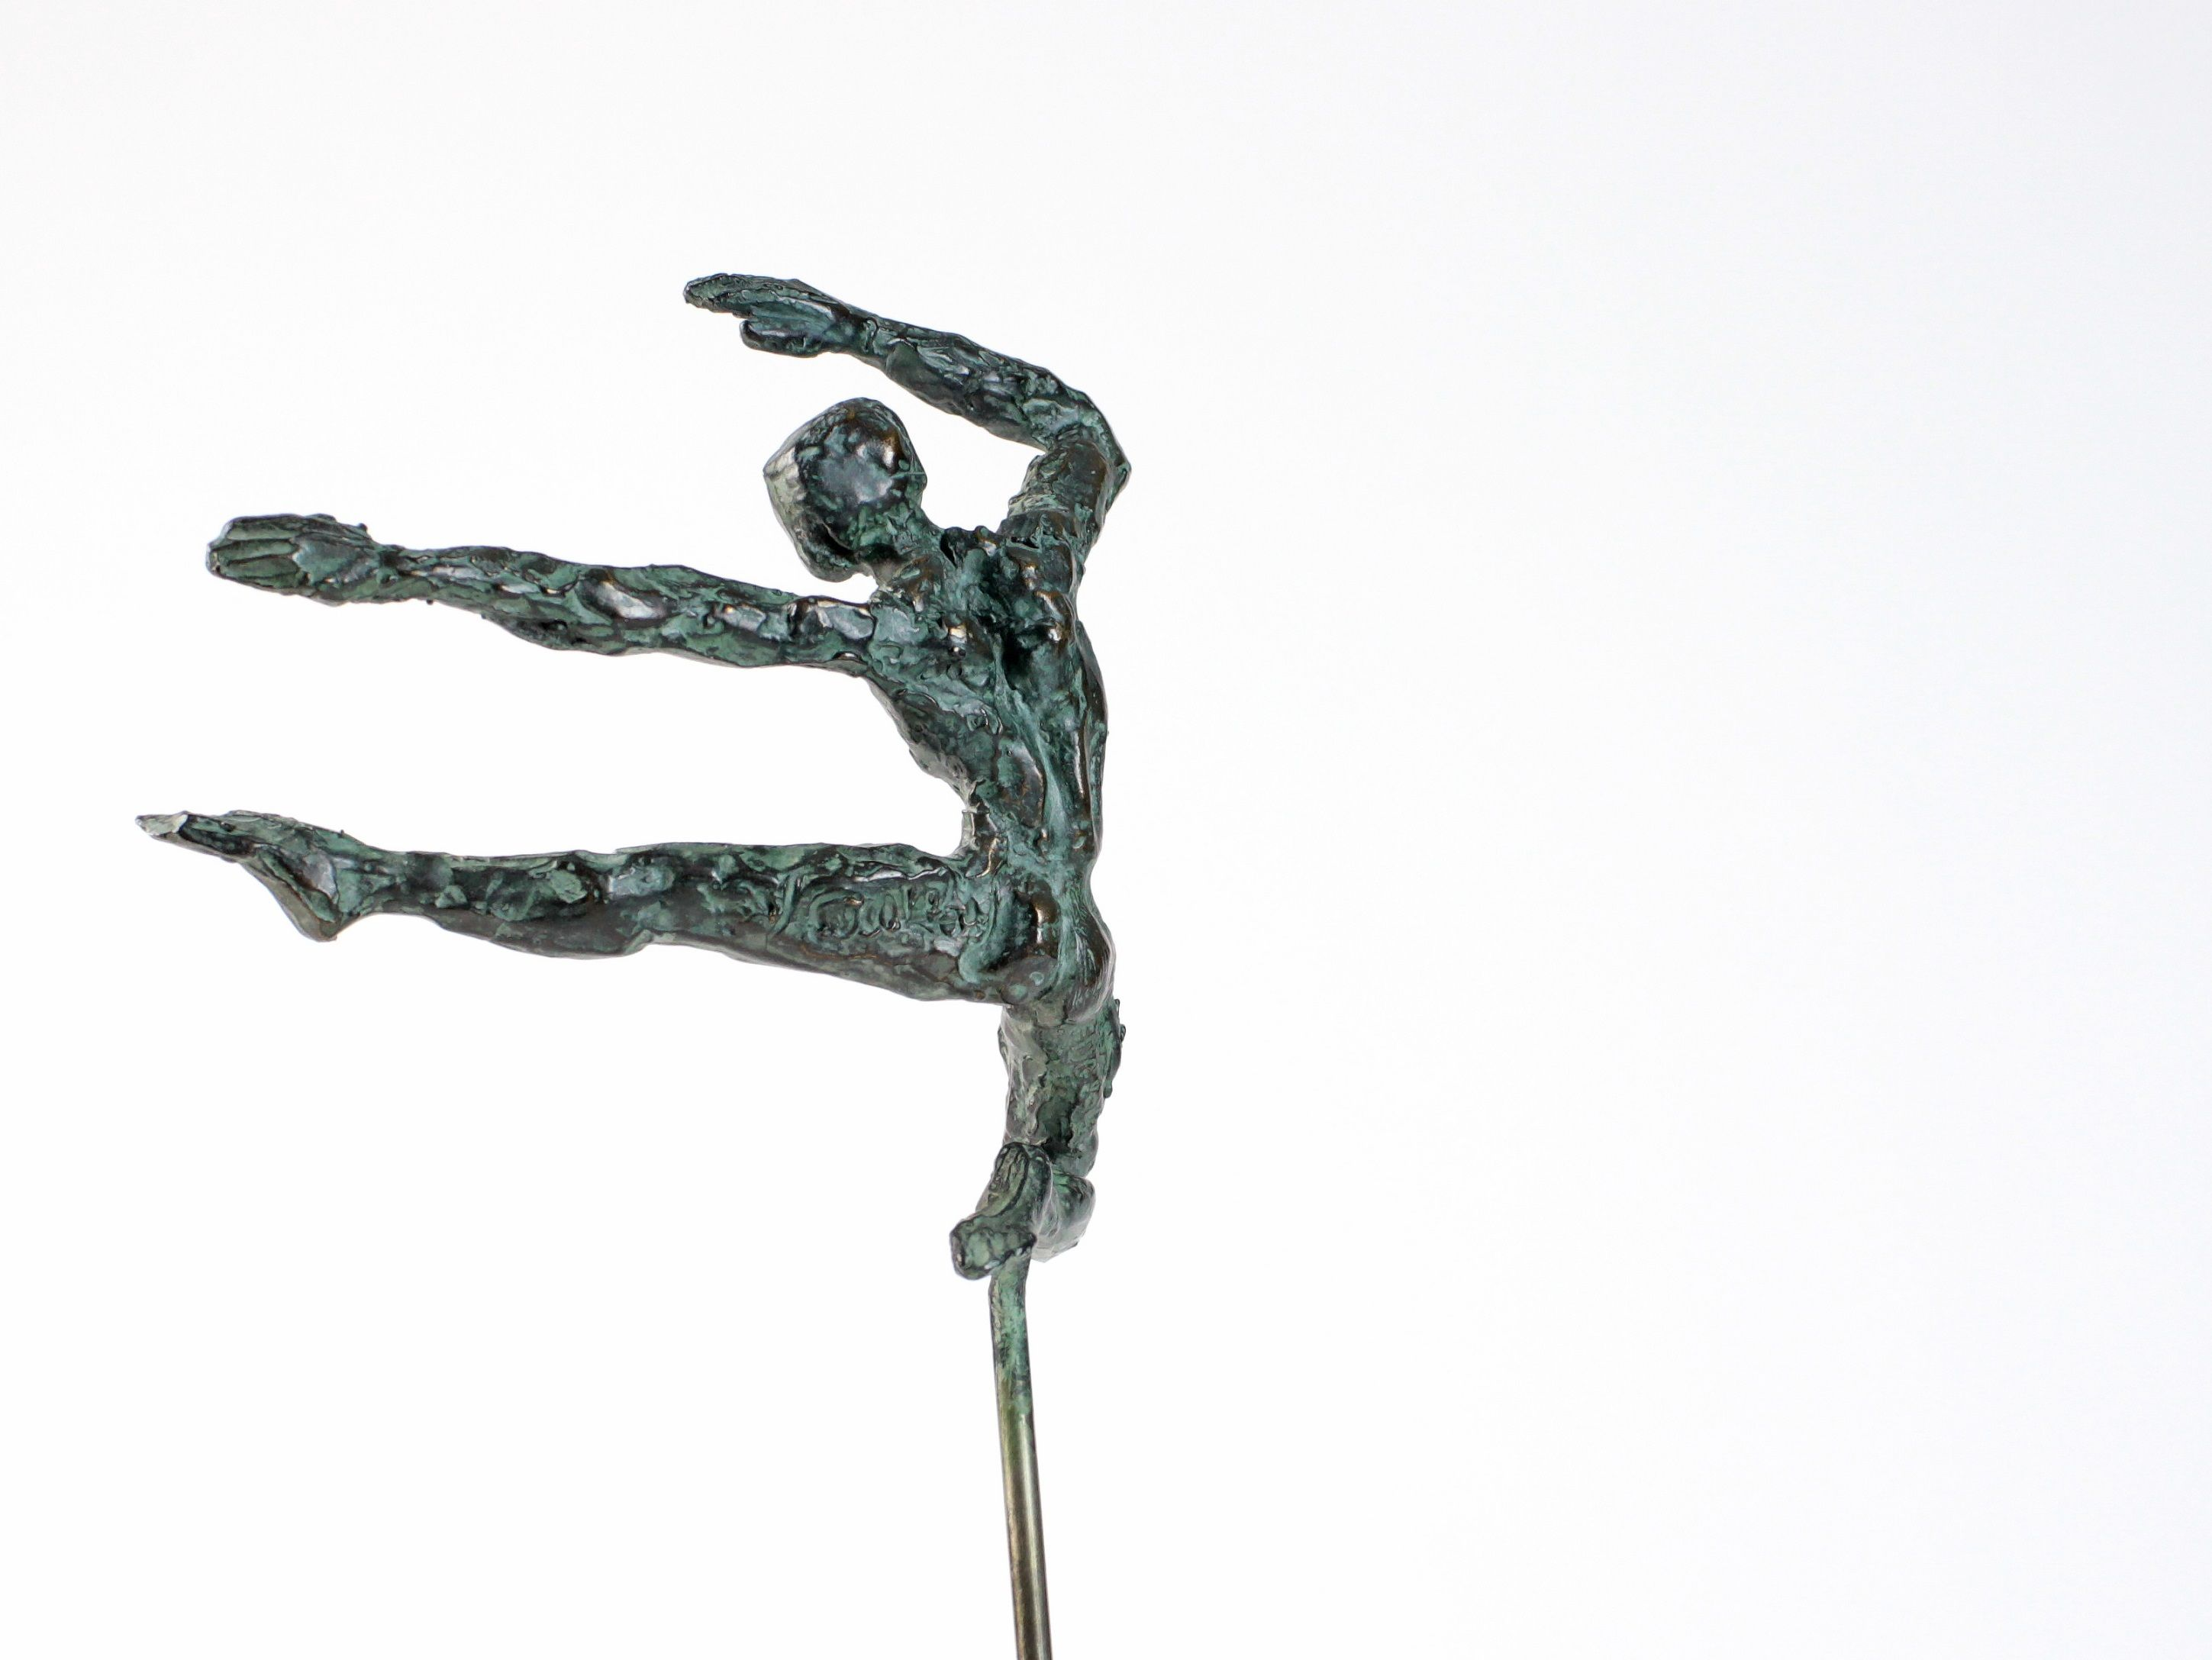 Petit Danseur Karateka II,Yann Guillon,Sculpture contemporaine, detail 2